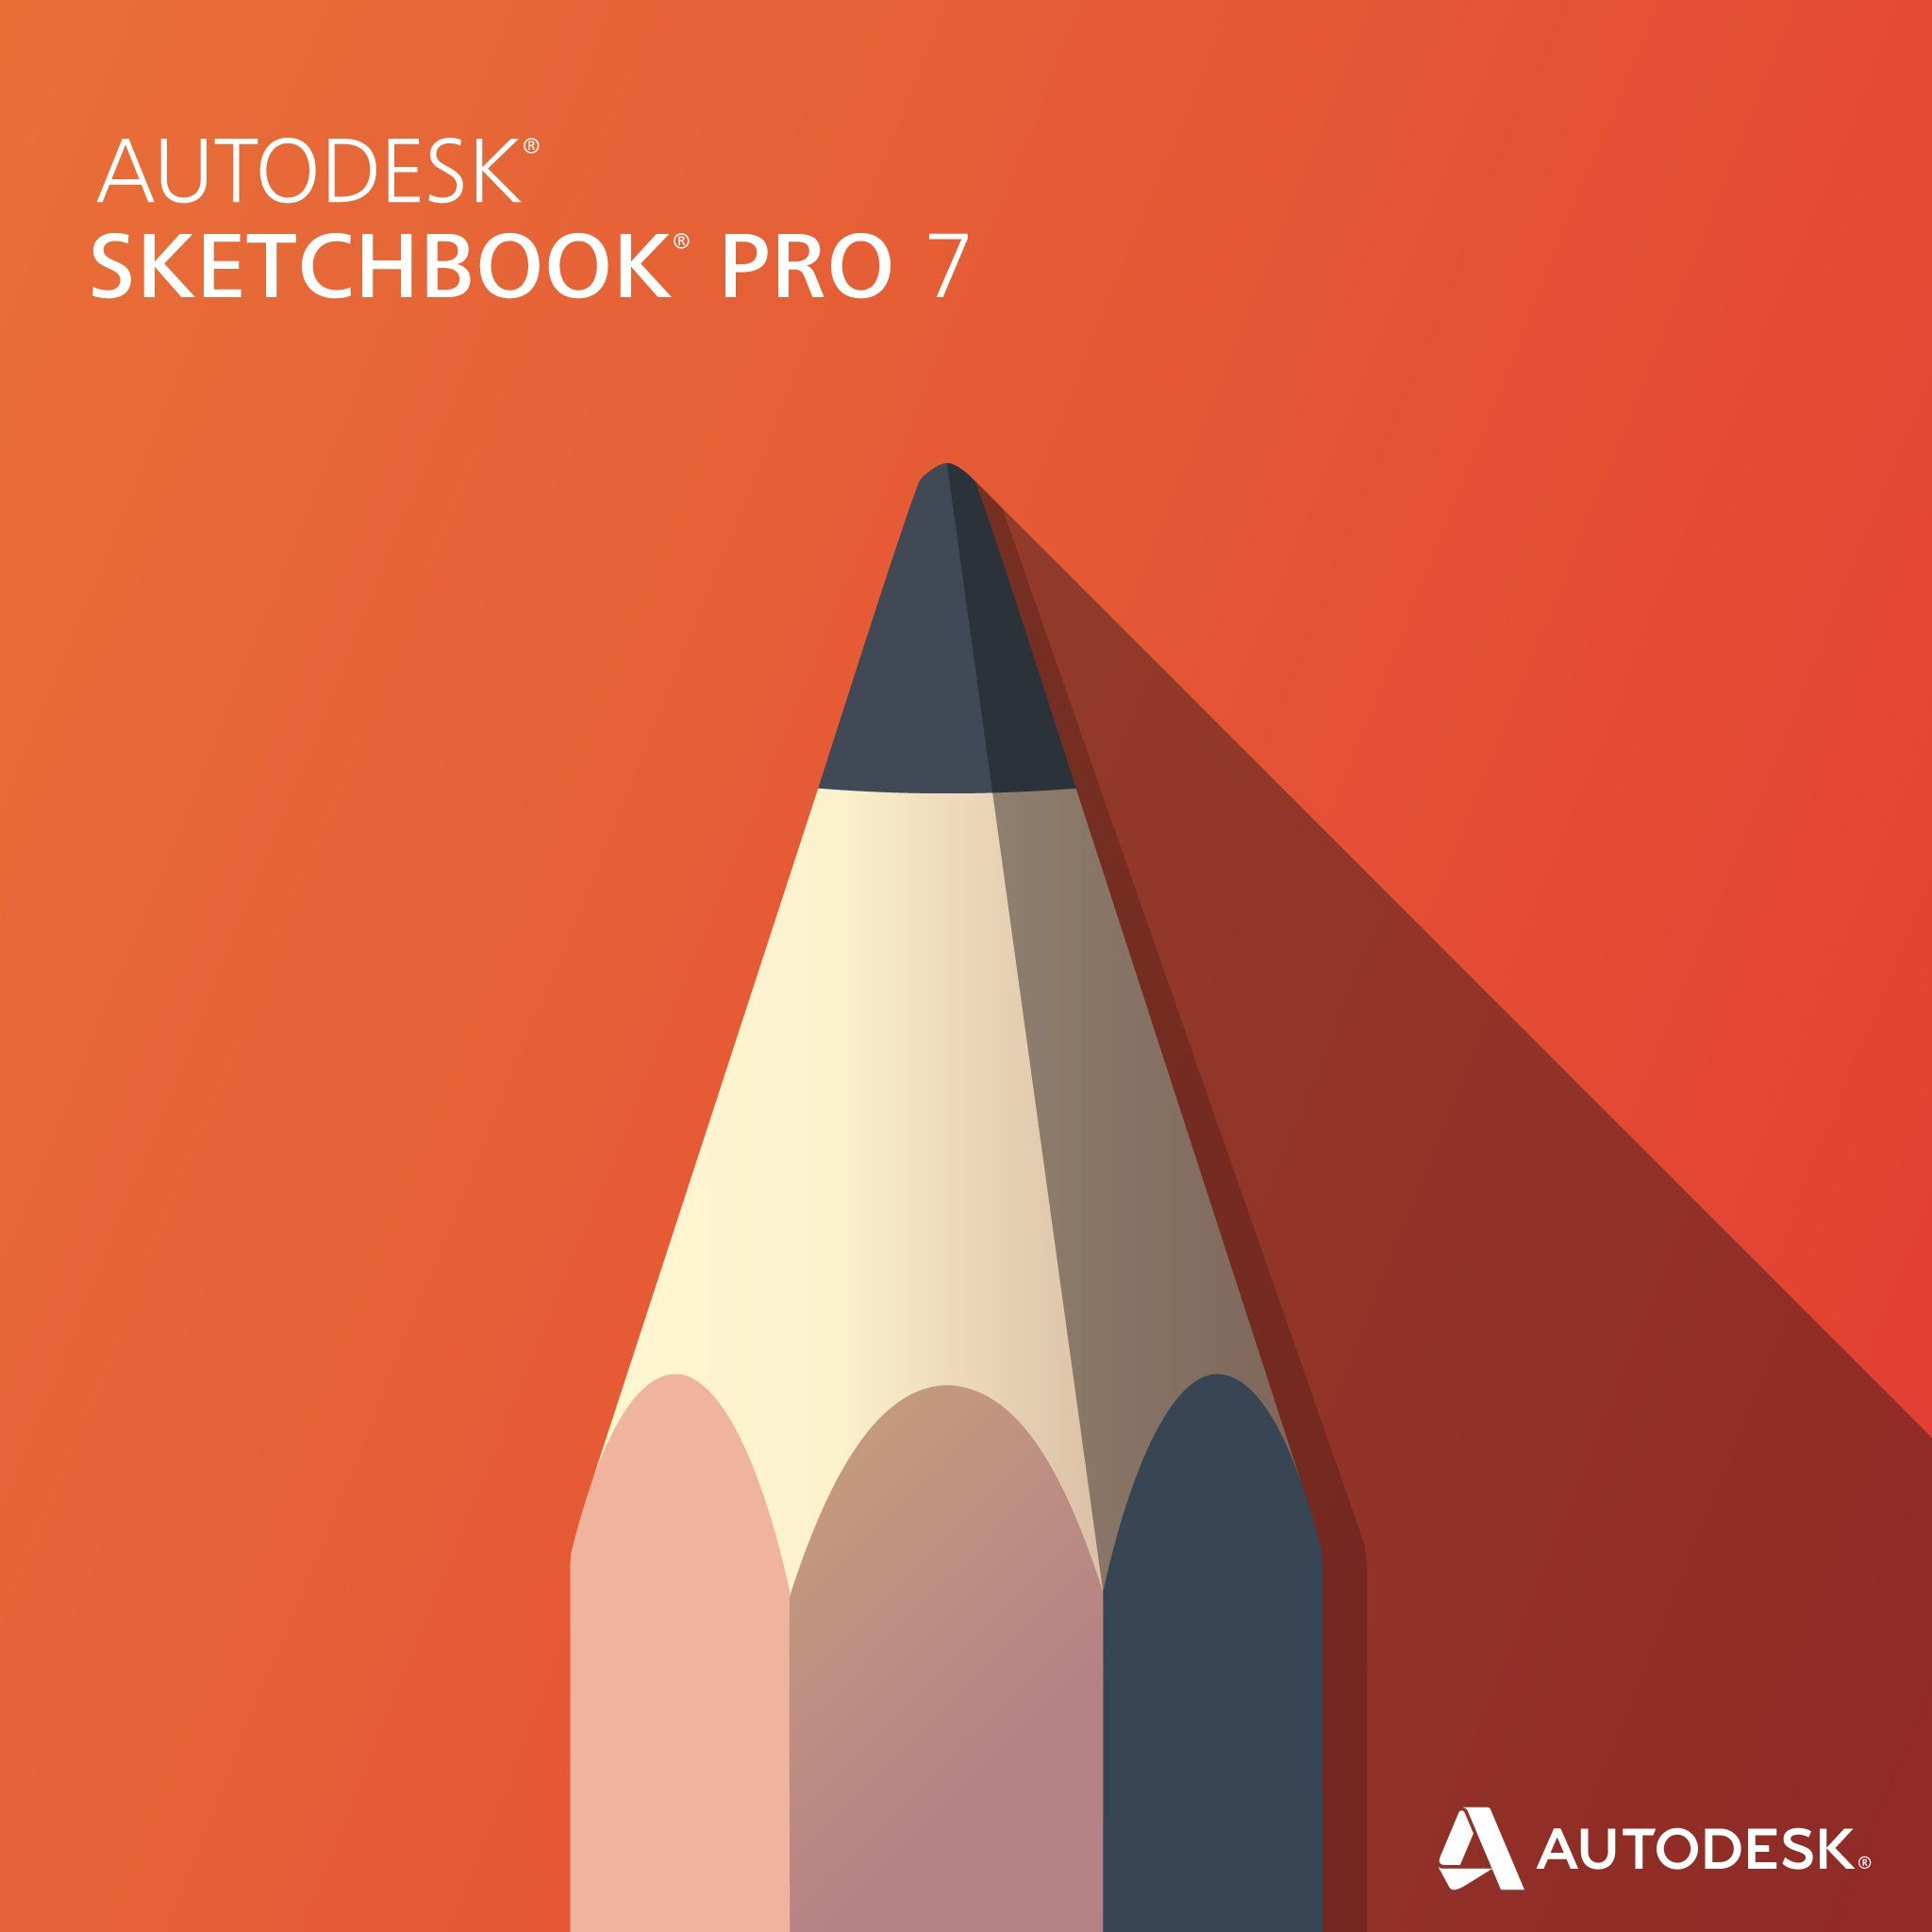 How to create grid in sketchbook pro - Autodesk Sketchbook Pro 7 Autodesk Sketchbook Pro 7 Is Made For Everyone Who Loves To Draw From The Natural Drawing Experience Of The Pencil Tool